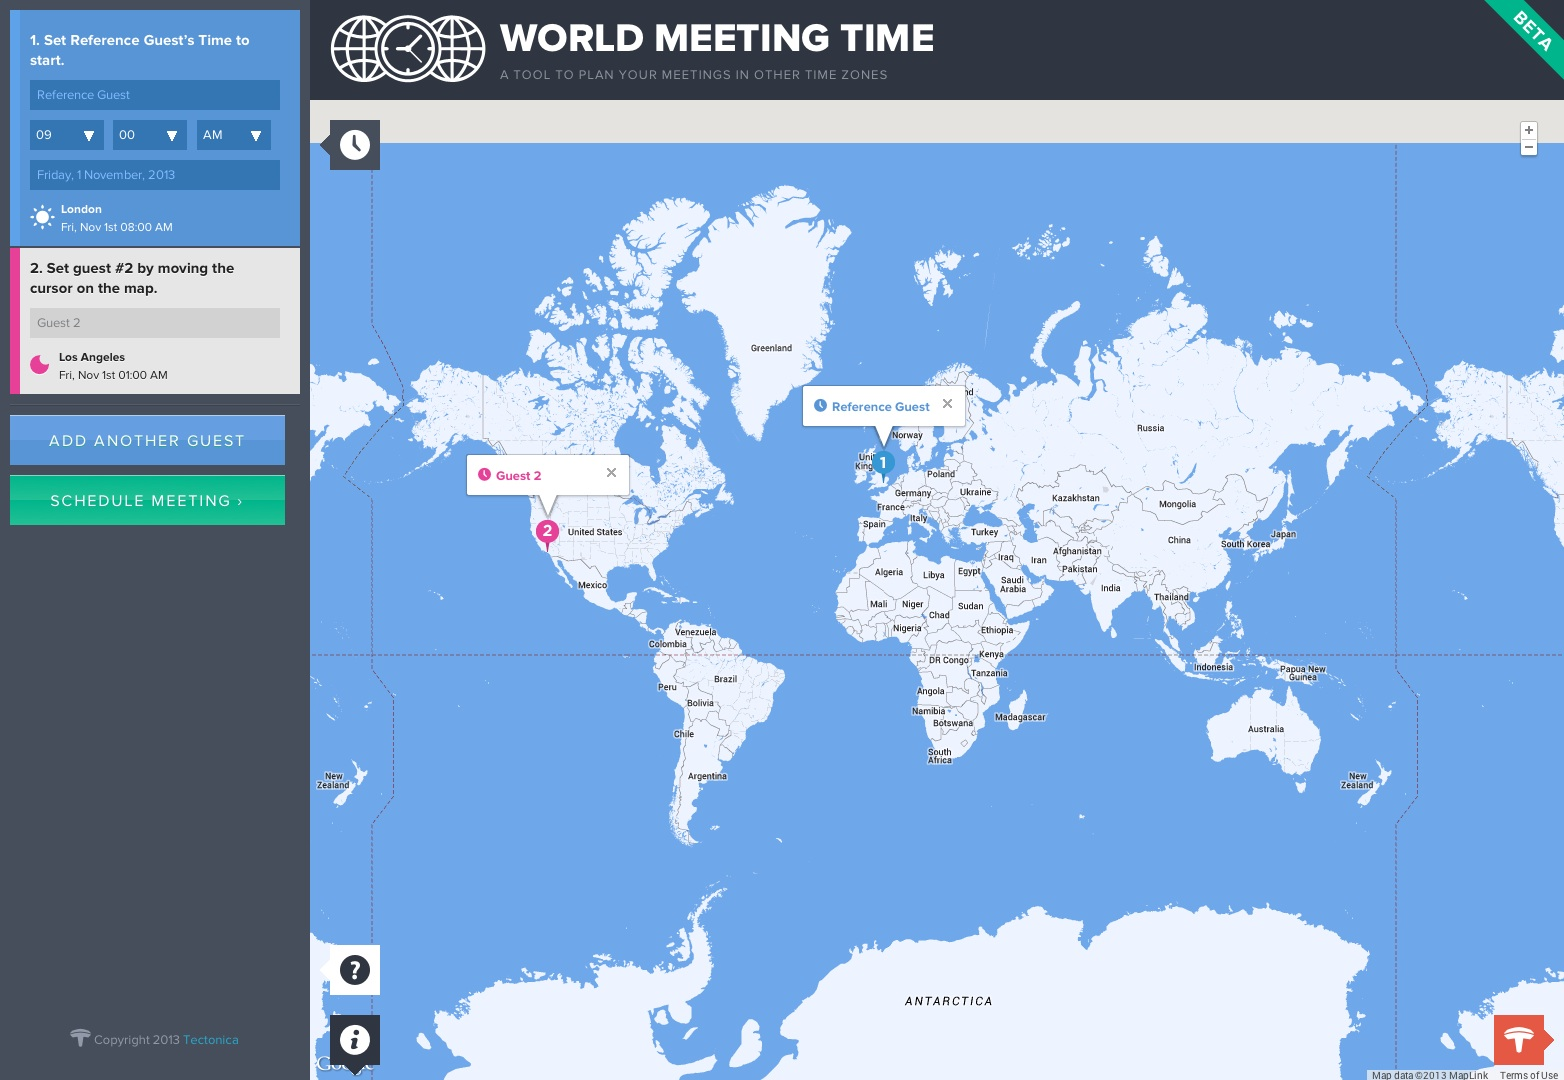 World Meeting Time